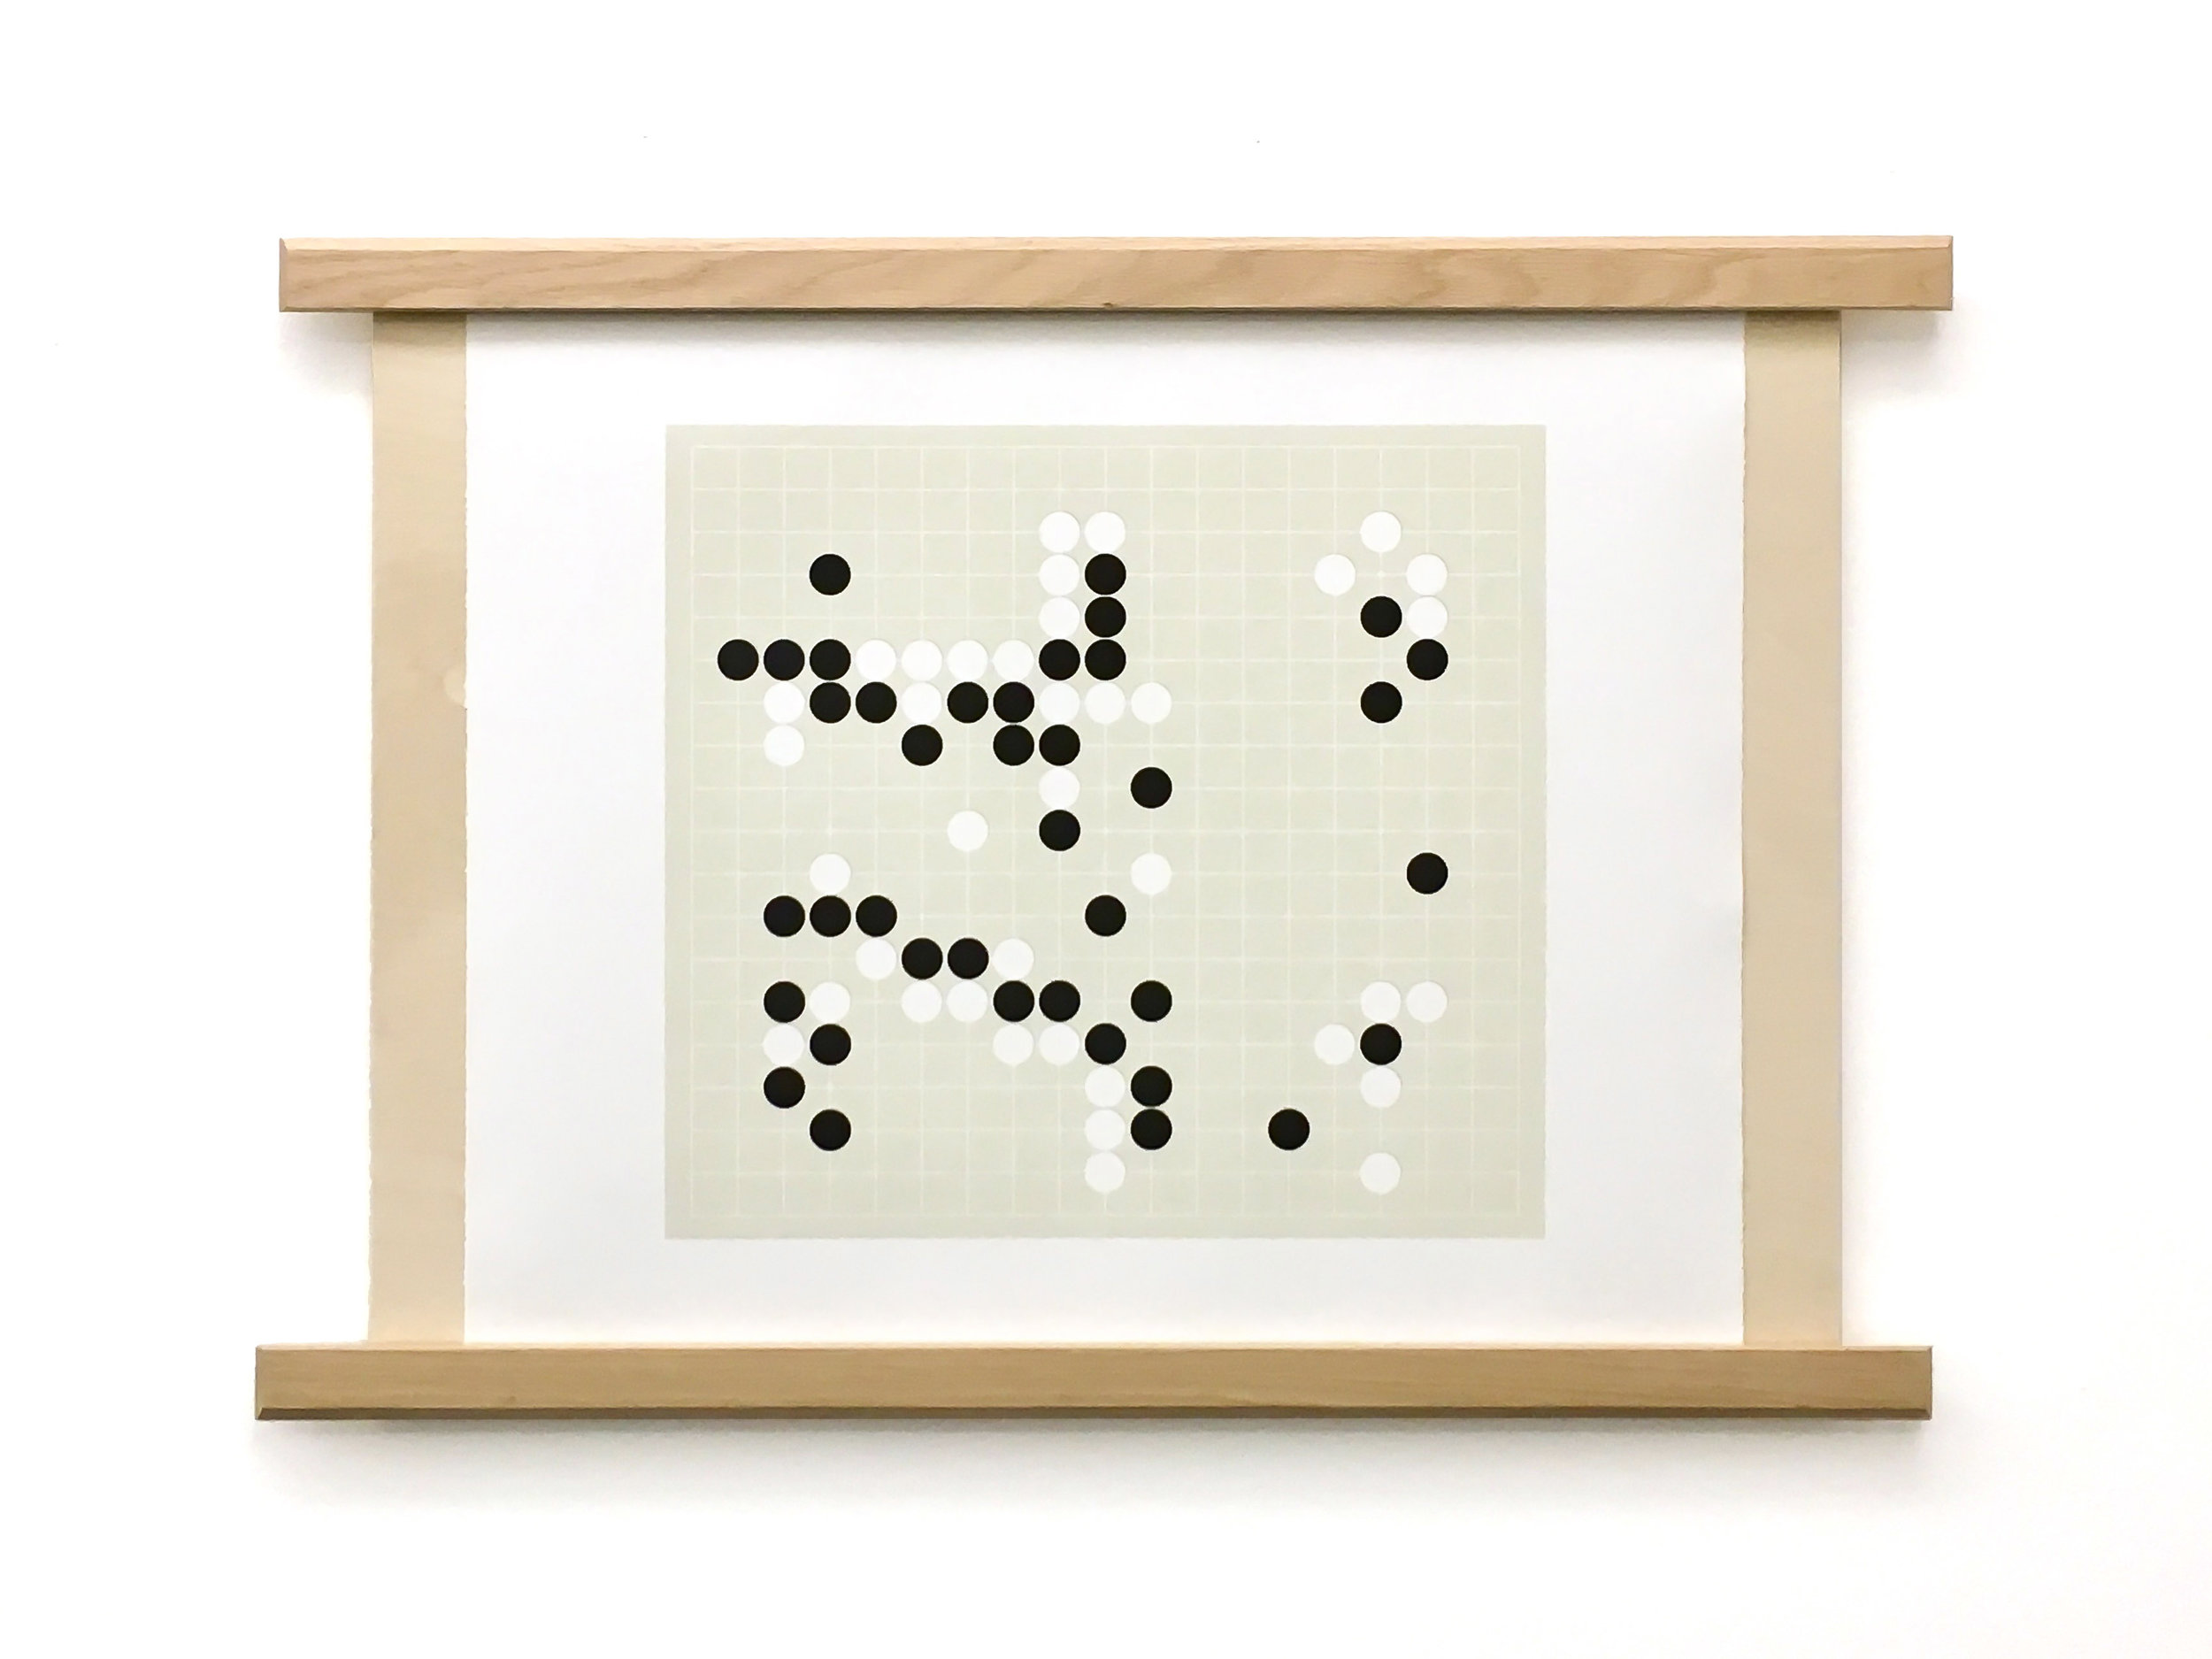 "Learning From One's Mistakes (Game 4, Move 78) Lithograph with Wood Support 22"" x 23"""